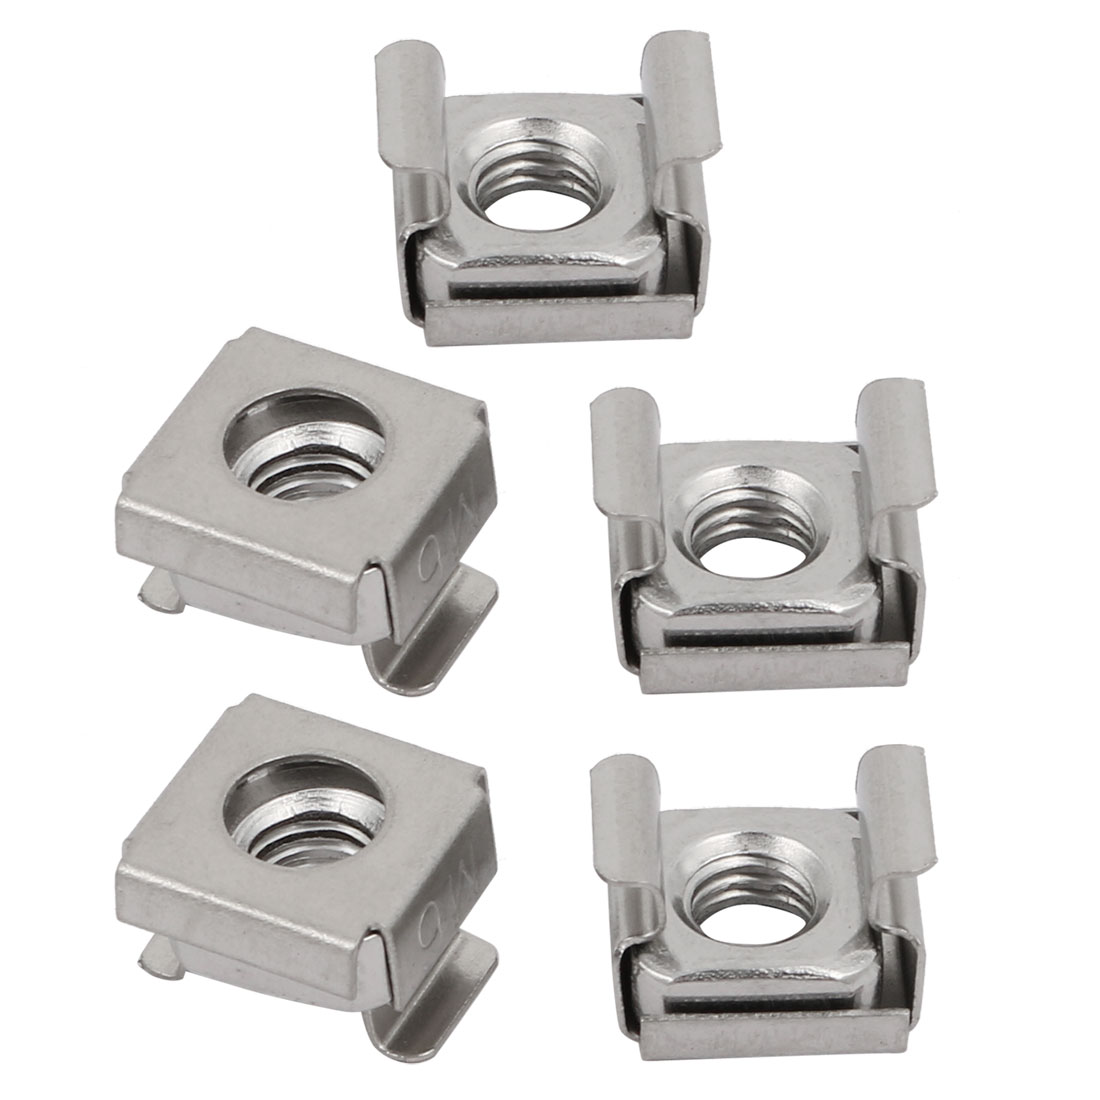 5pcs M6 304 Stainless Steel Cage Nut Silver Tone for Server Shelf Cabinet